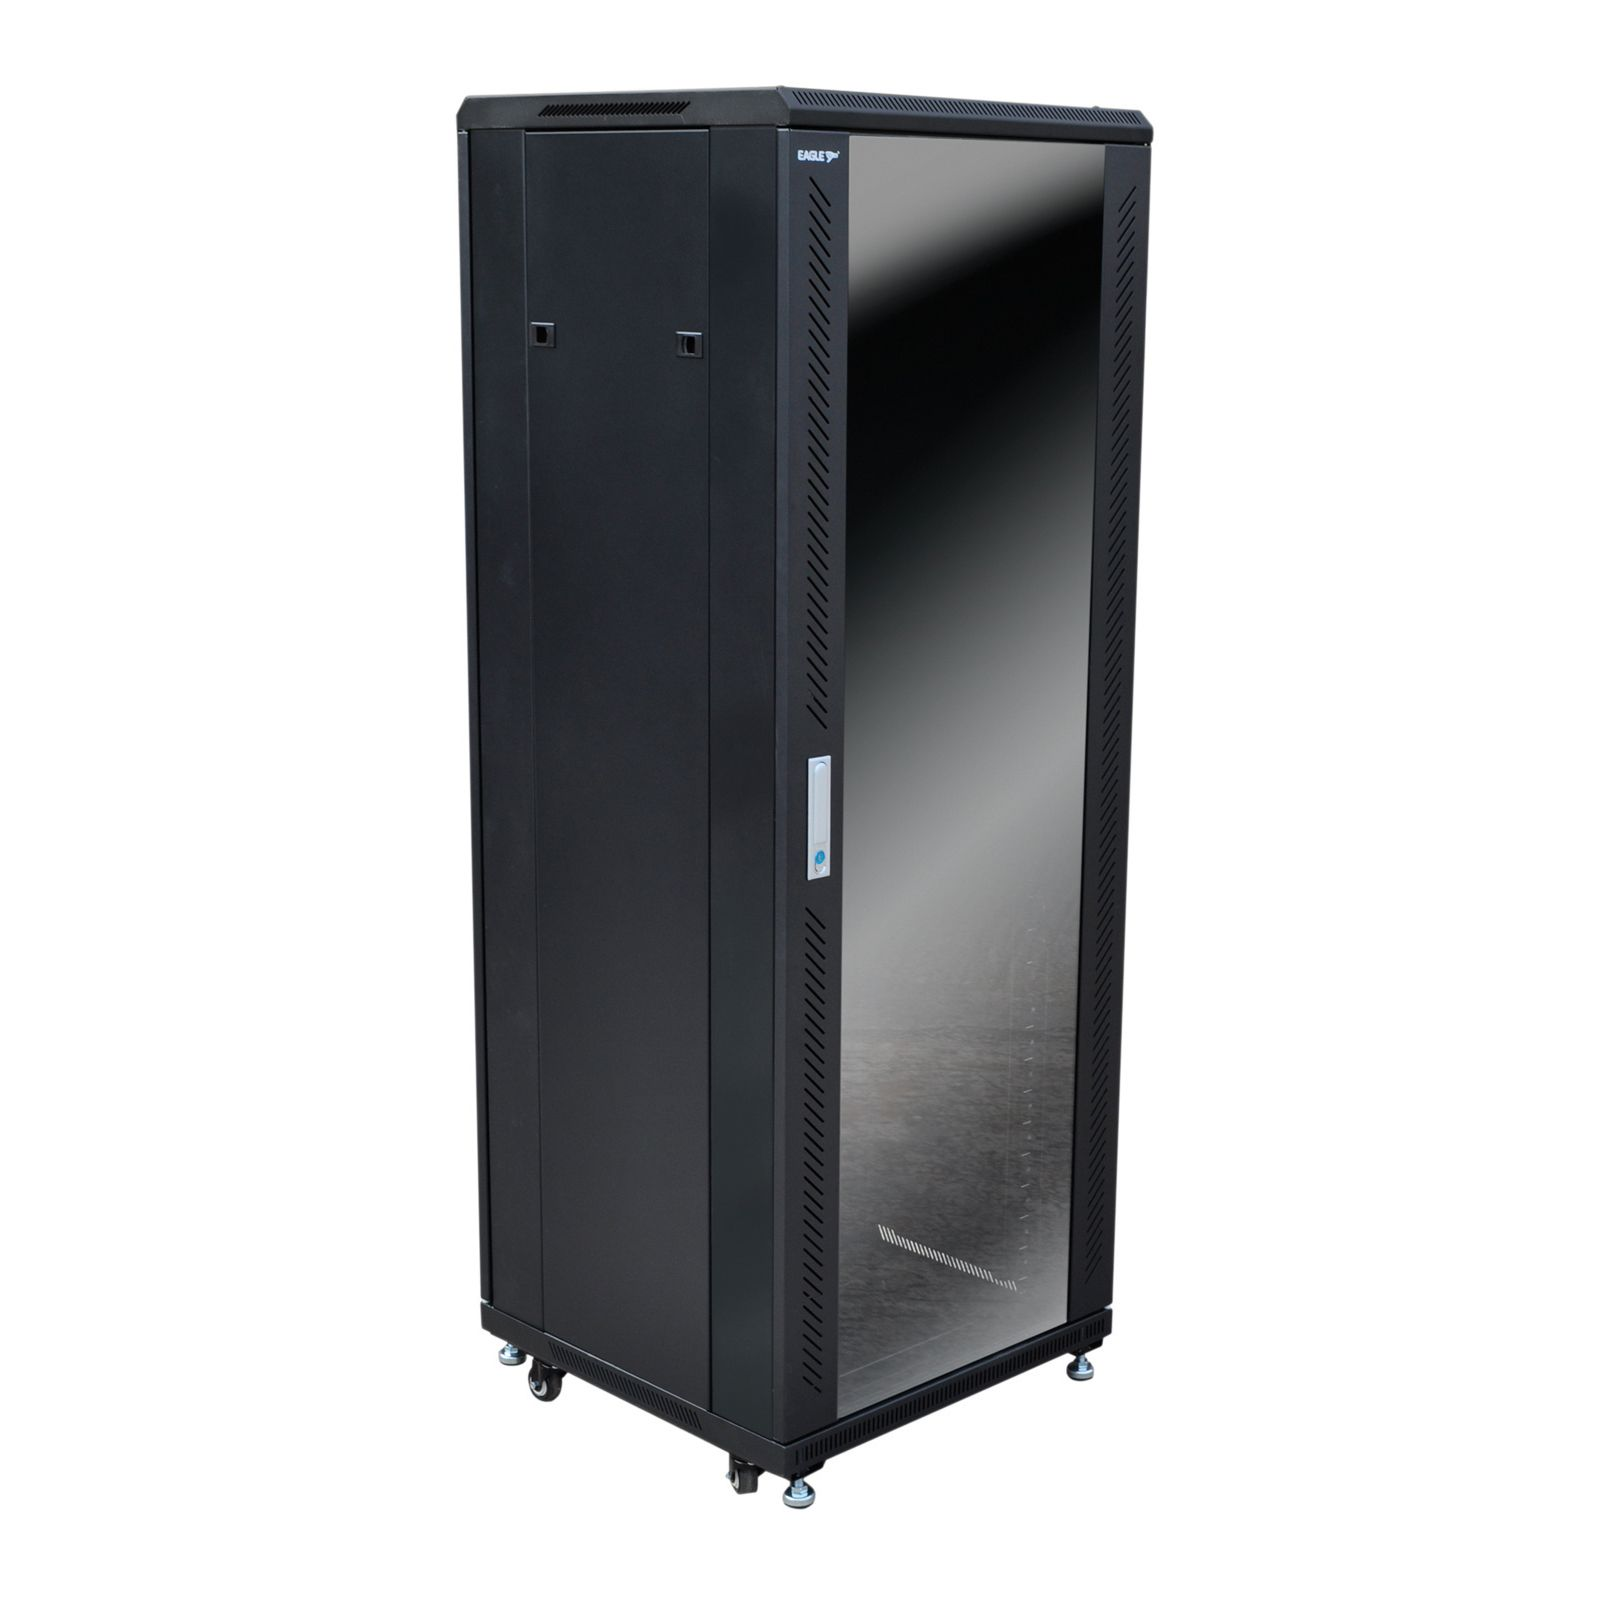 ple server knock full products cabinet down rack startech